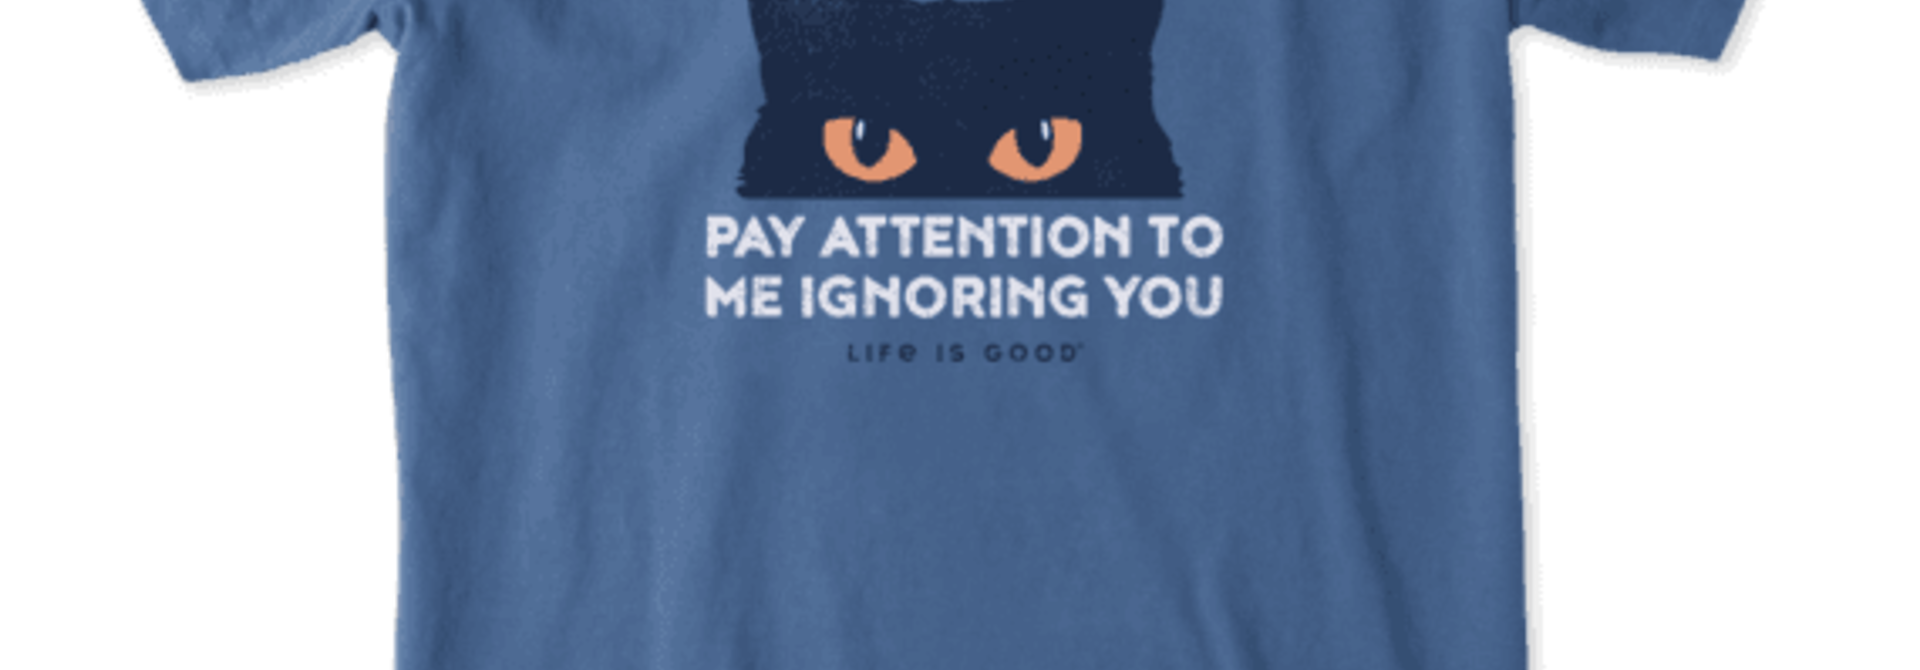 Pay Attention Cat Eyes LIG T-shirt